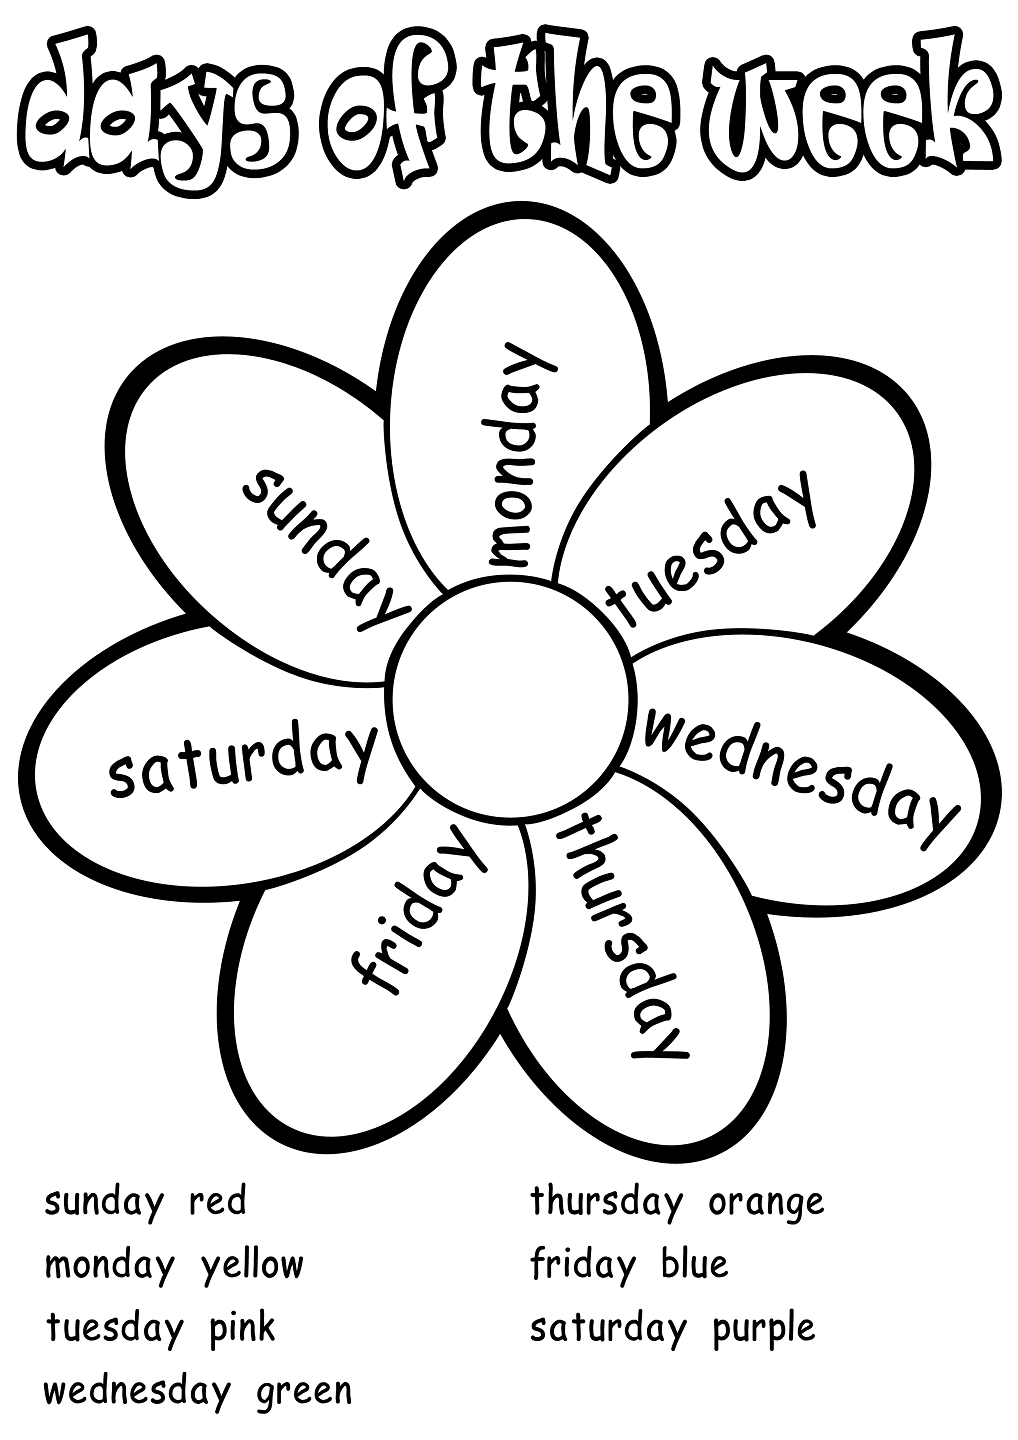 Color english worksheets - Days Of The Week Worksheets Activity Shelter